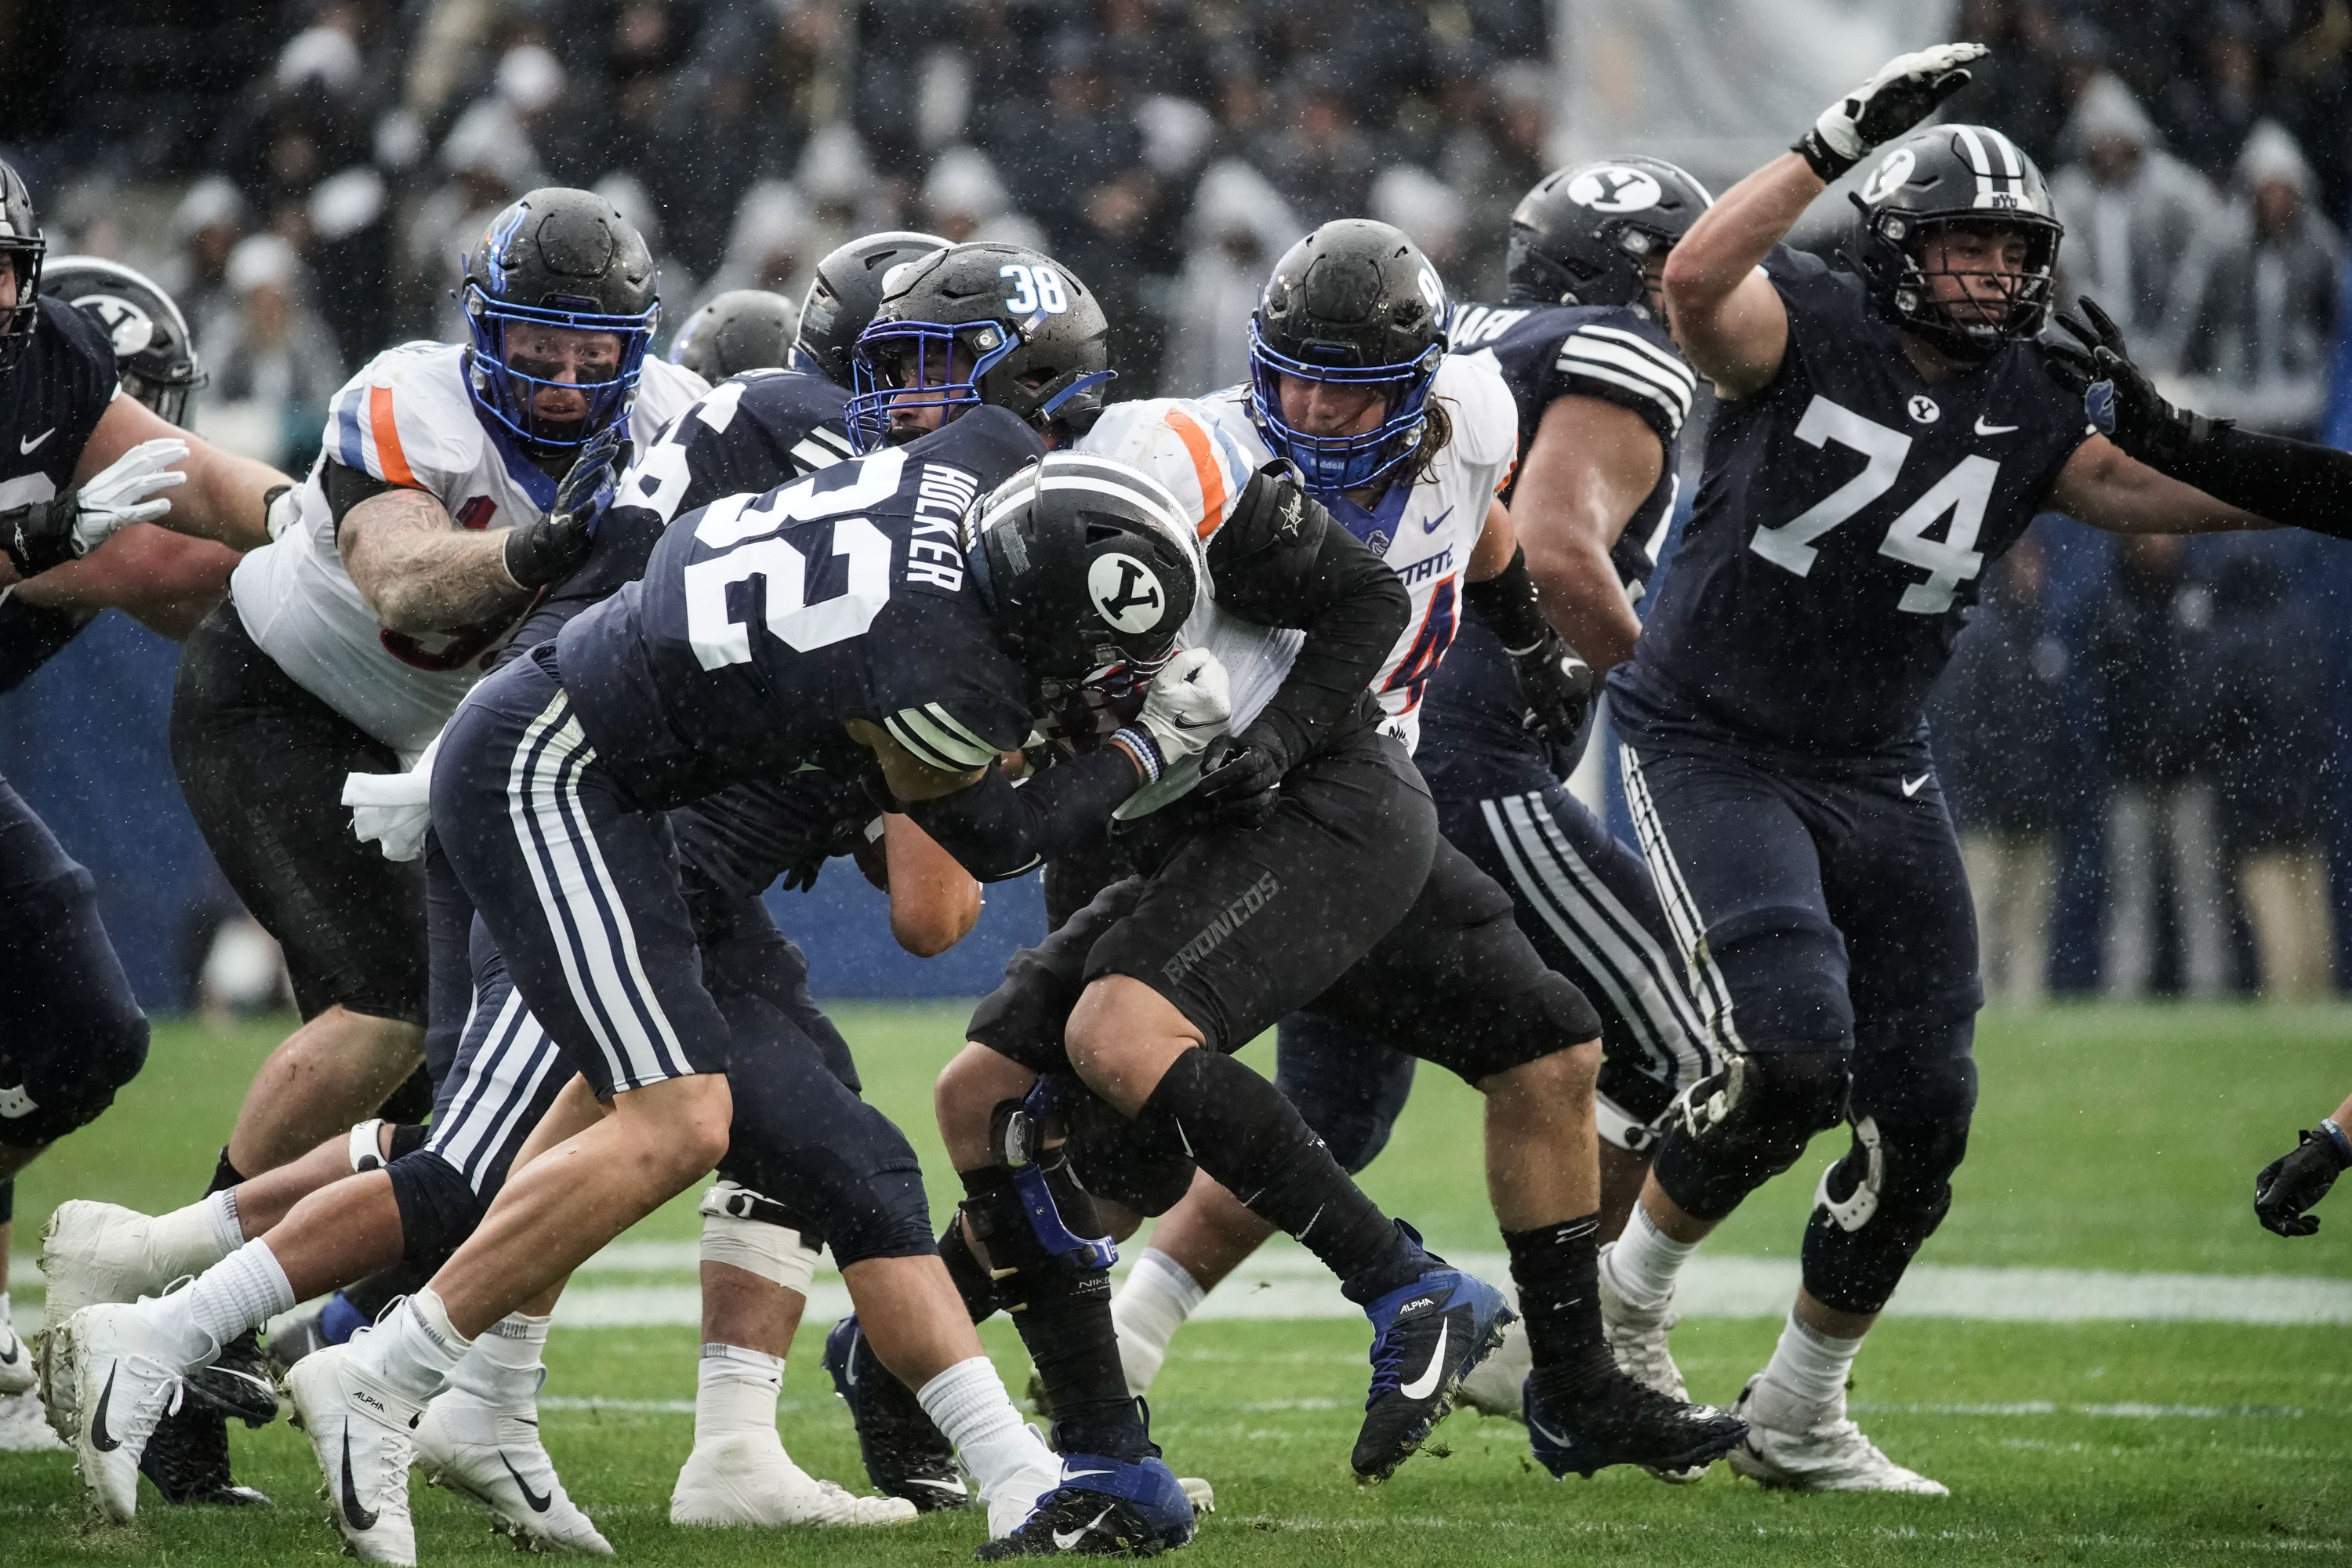 BYU and Boise State compete during an NCAA college football game.